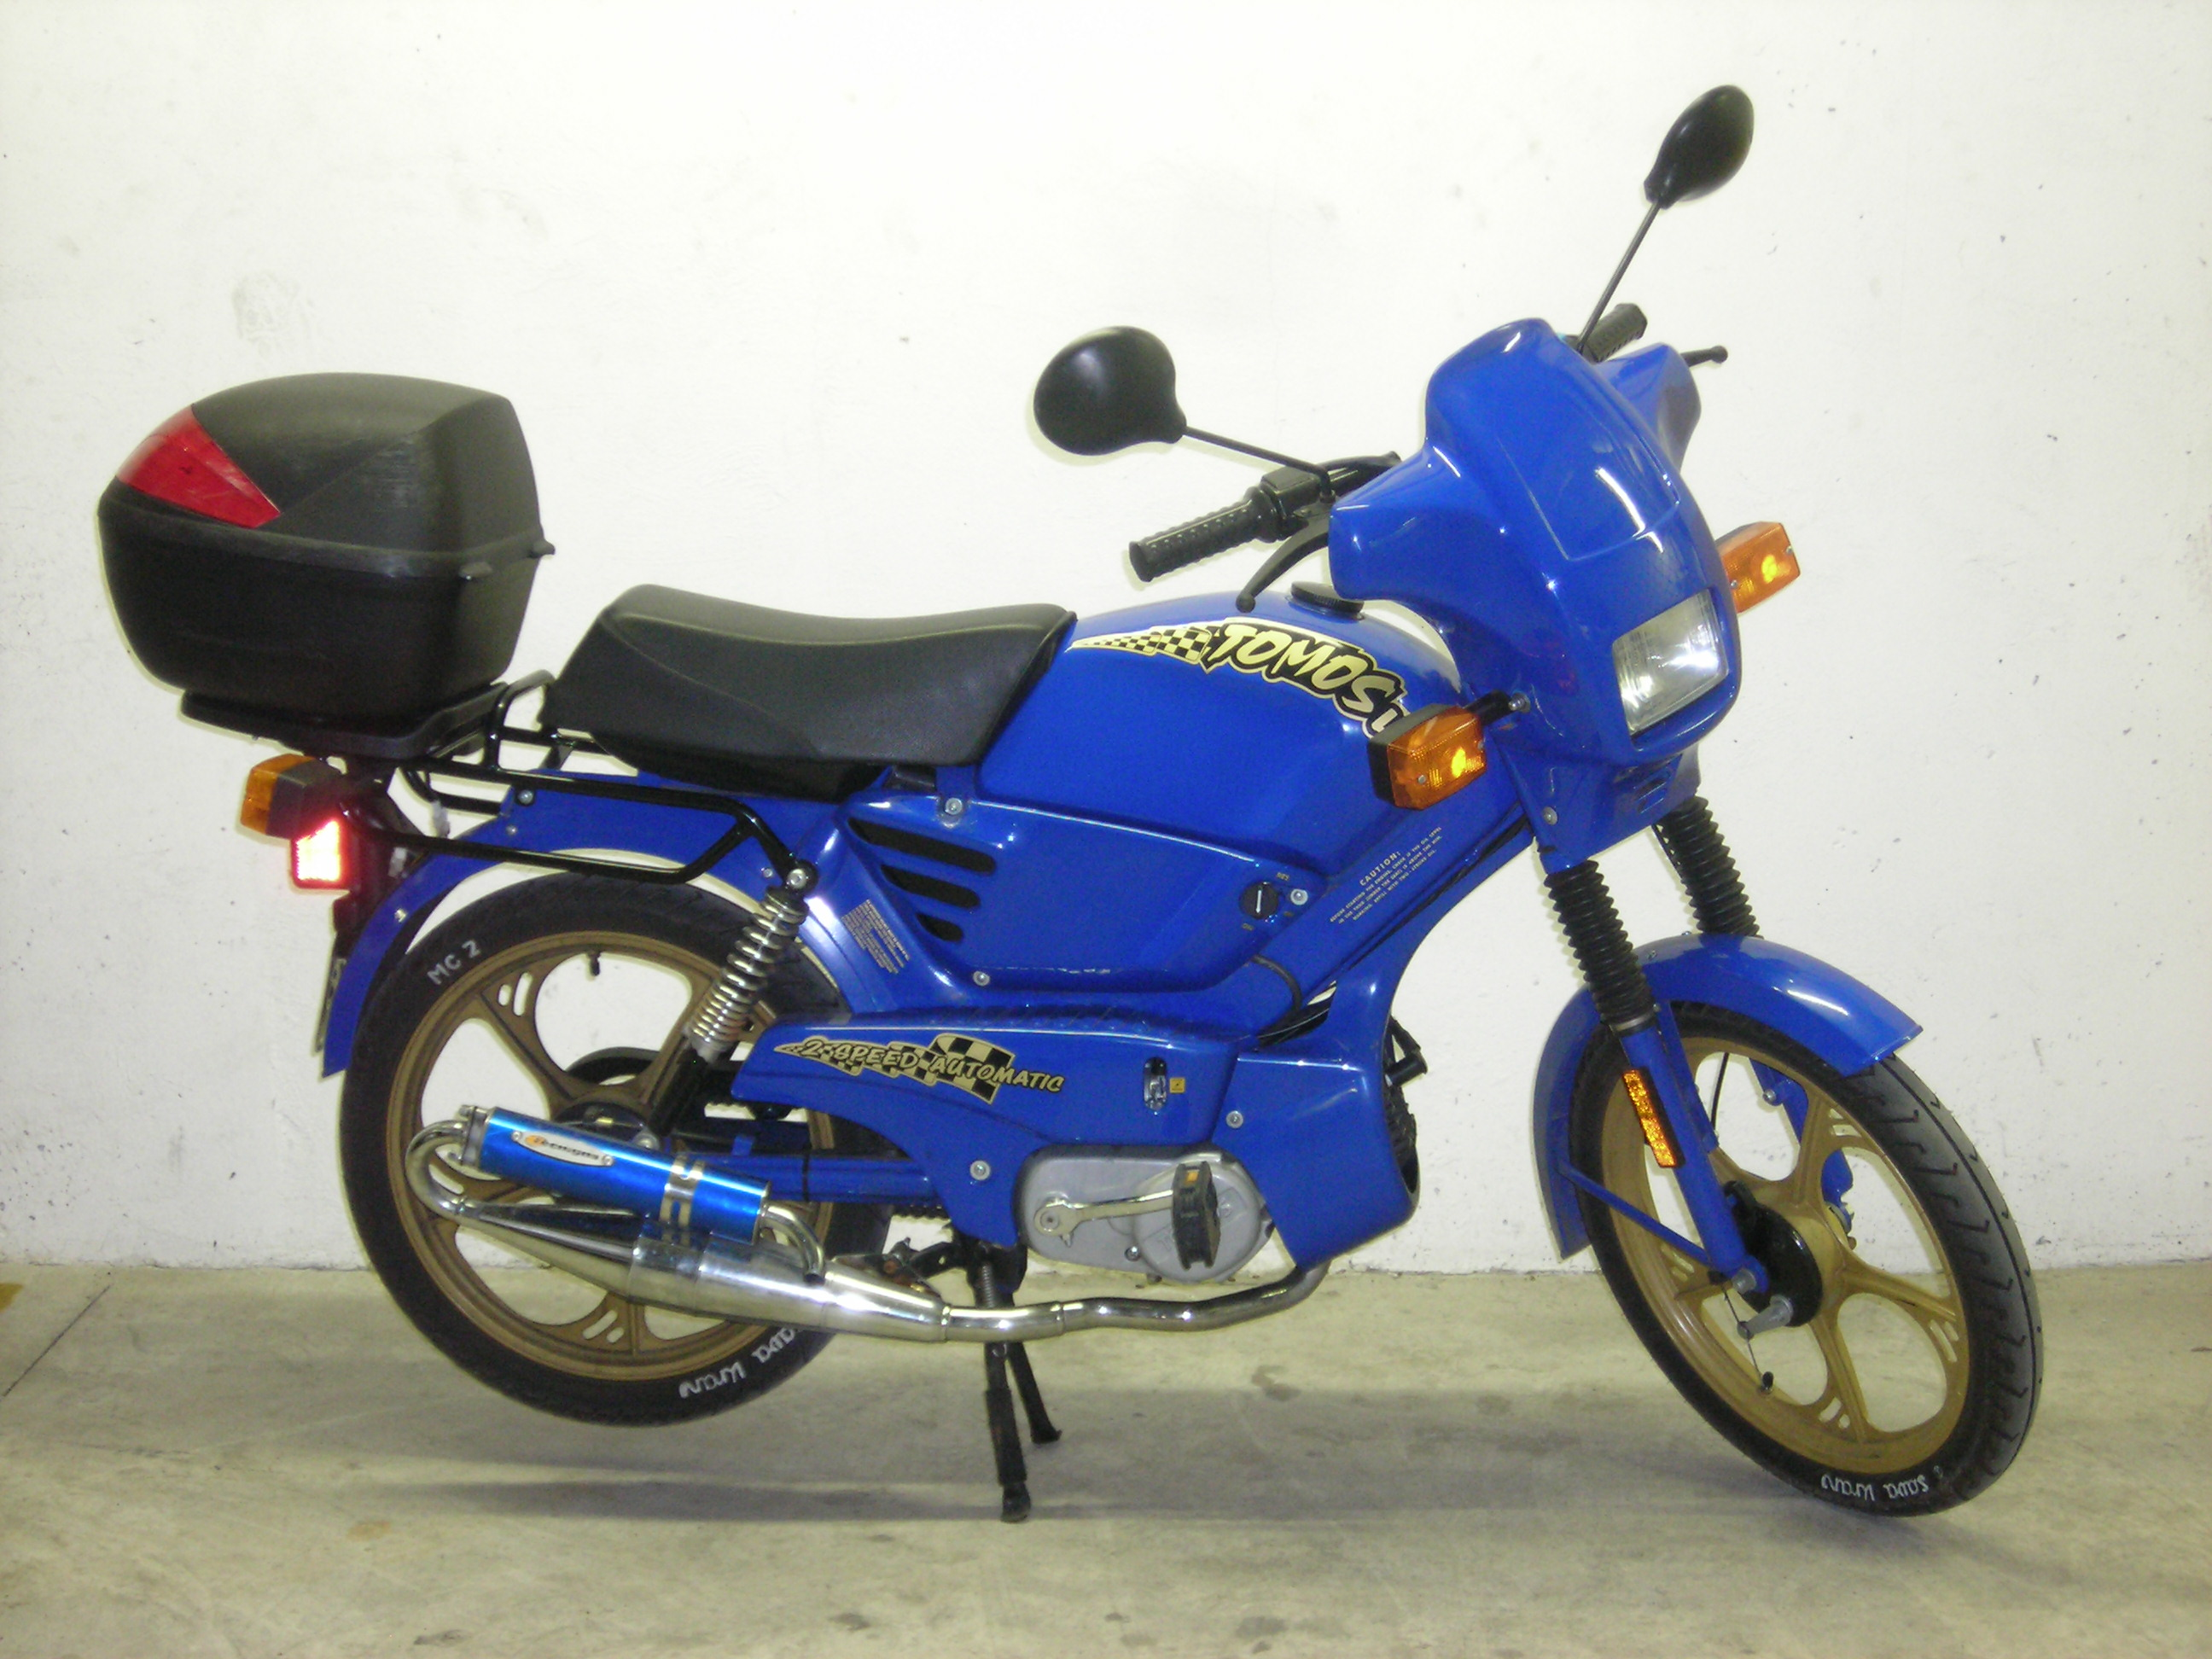 My moped. Notice